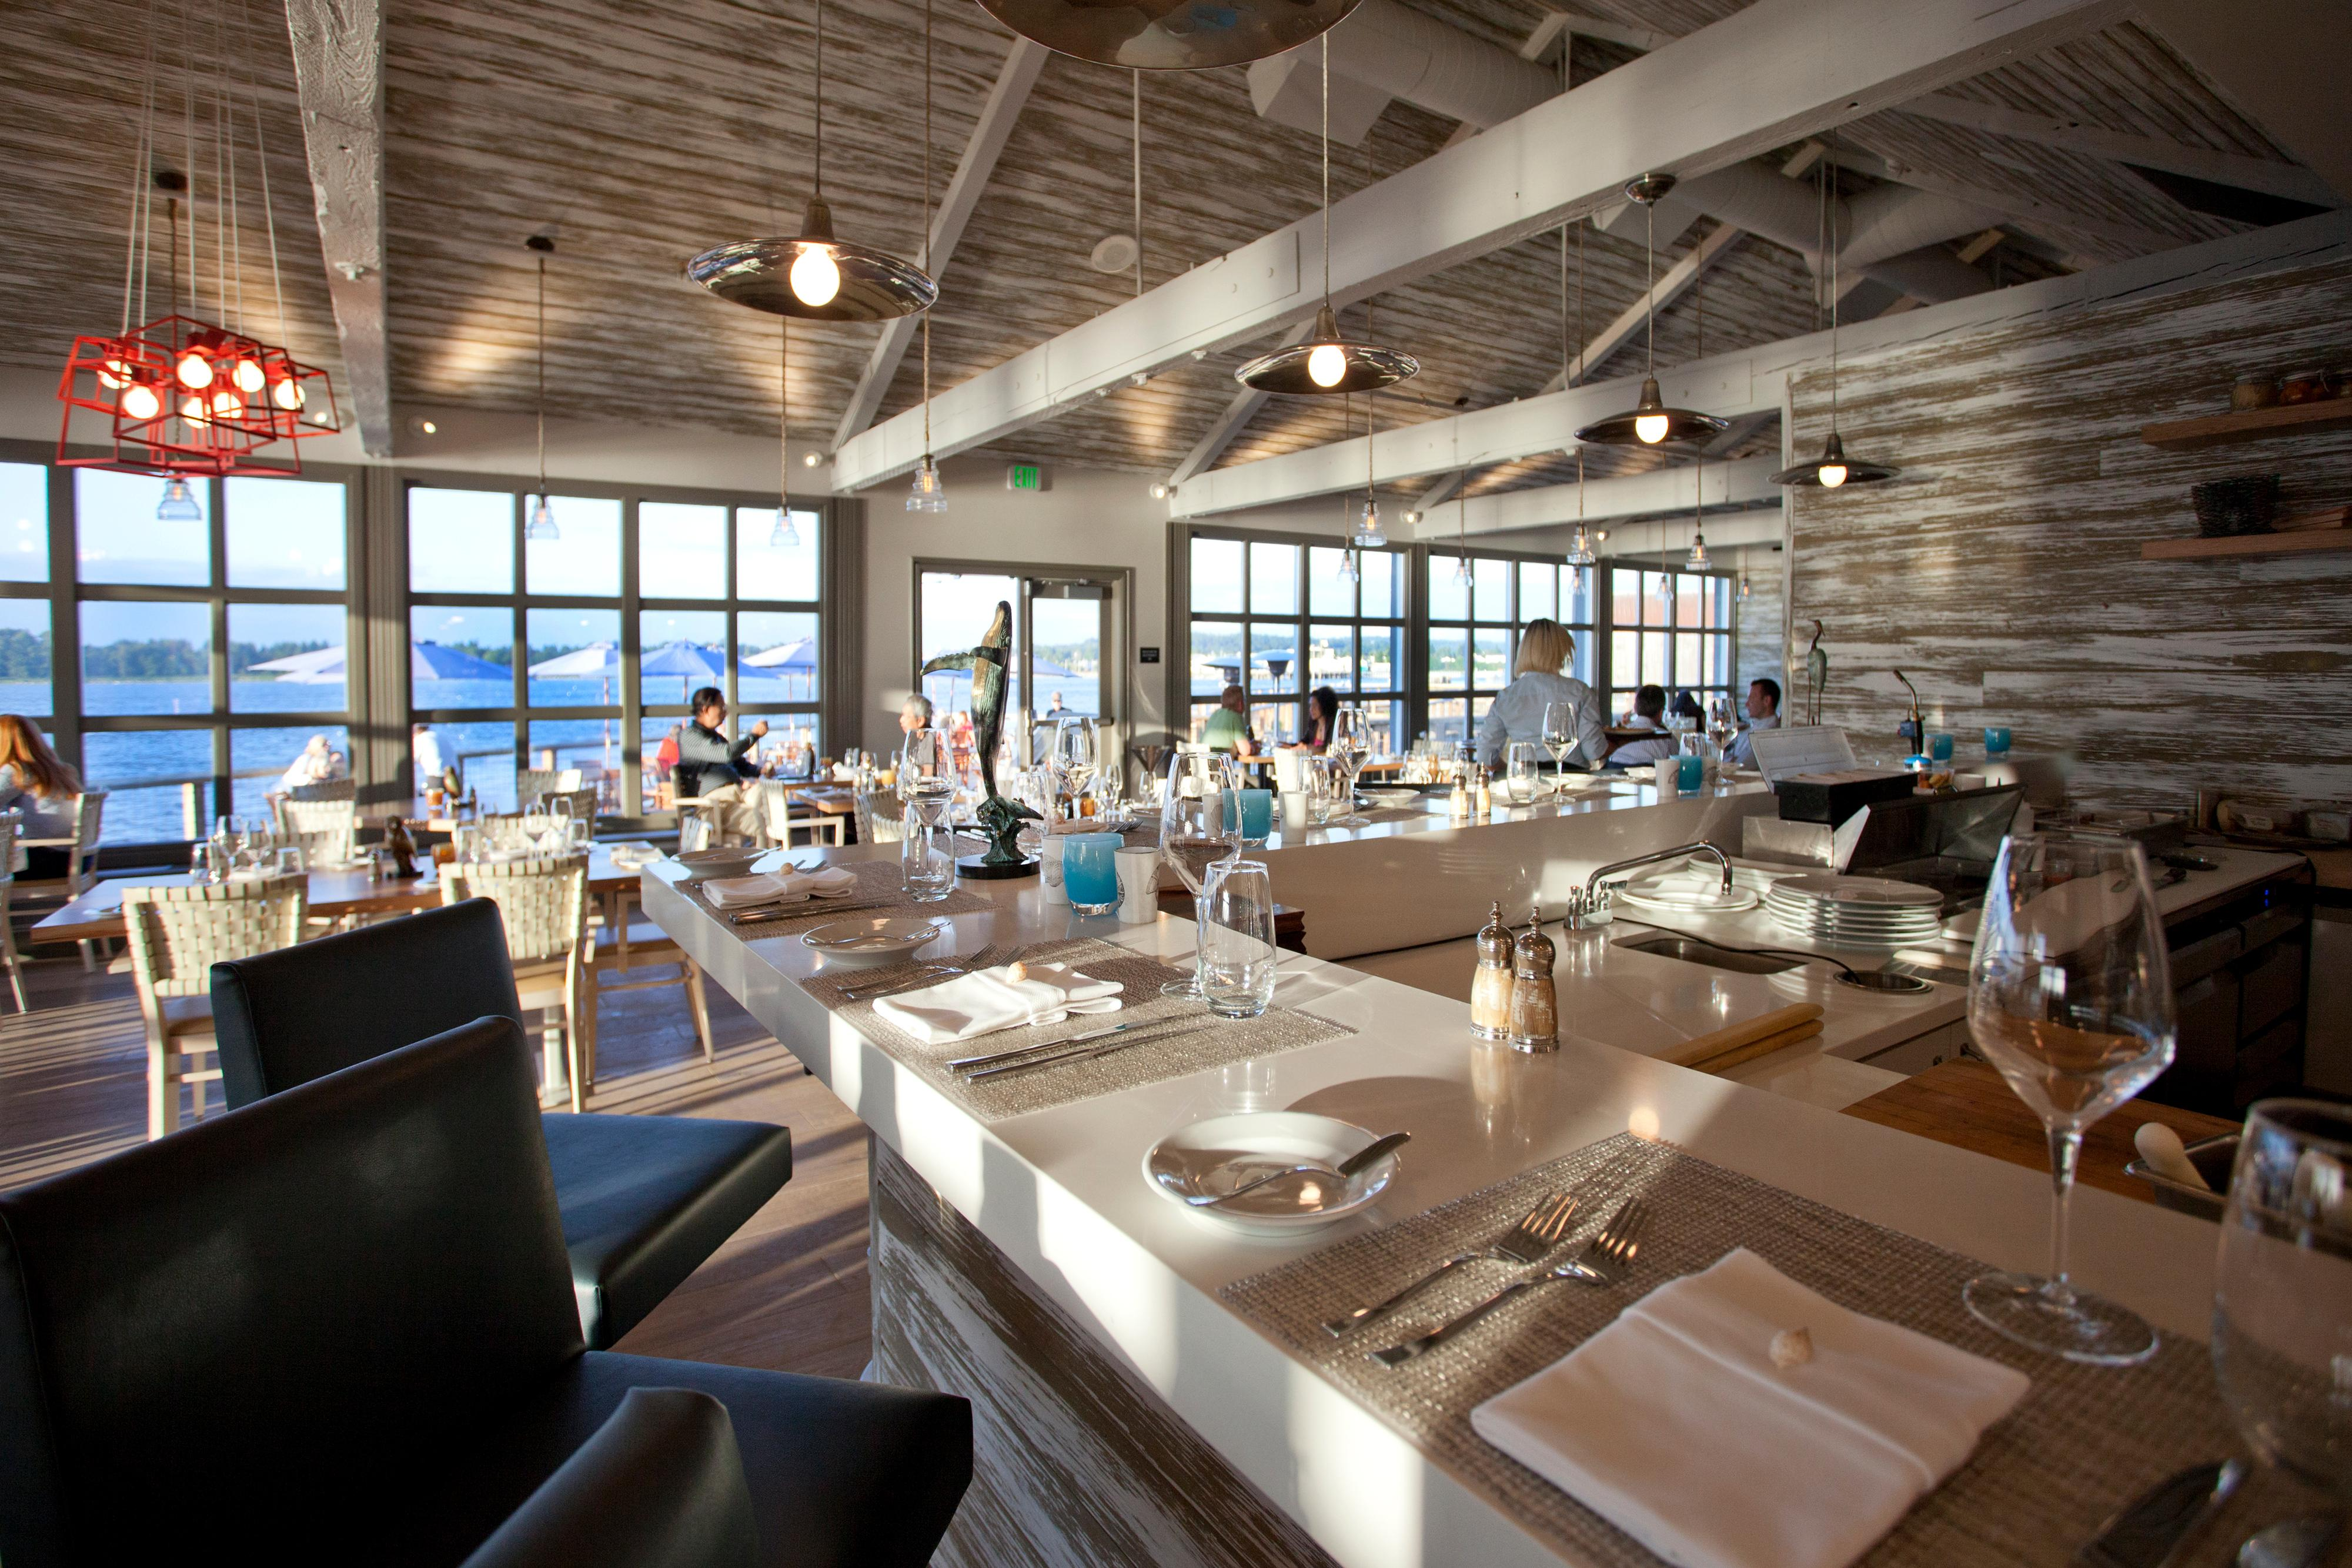 Semiahmoo's Pierside Kitchen offers some of the area's best seafood in a relaxed upscale setting